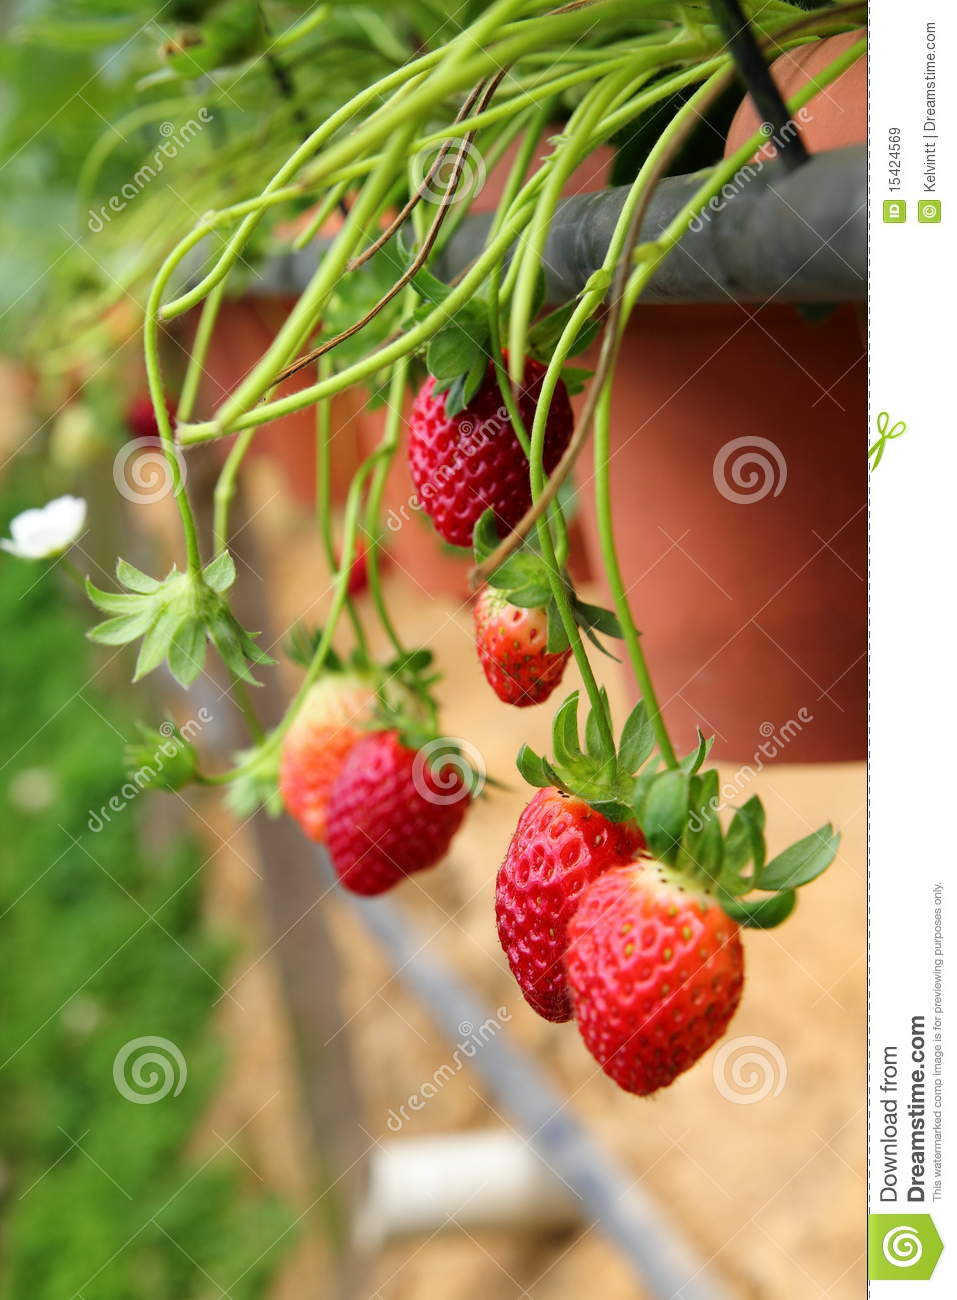 Strawberry Plant Royalty Free Stock Images - Image: 15424569